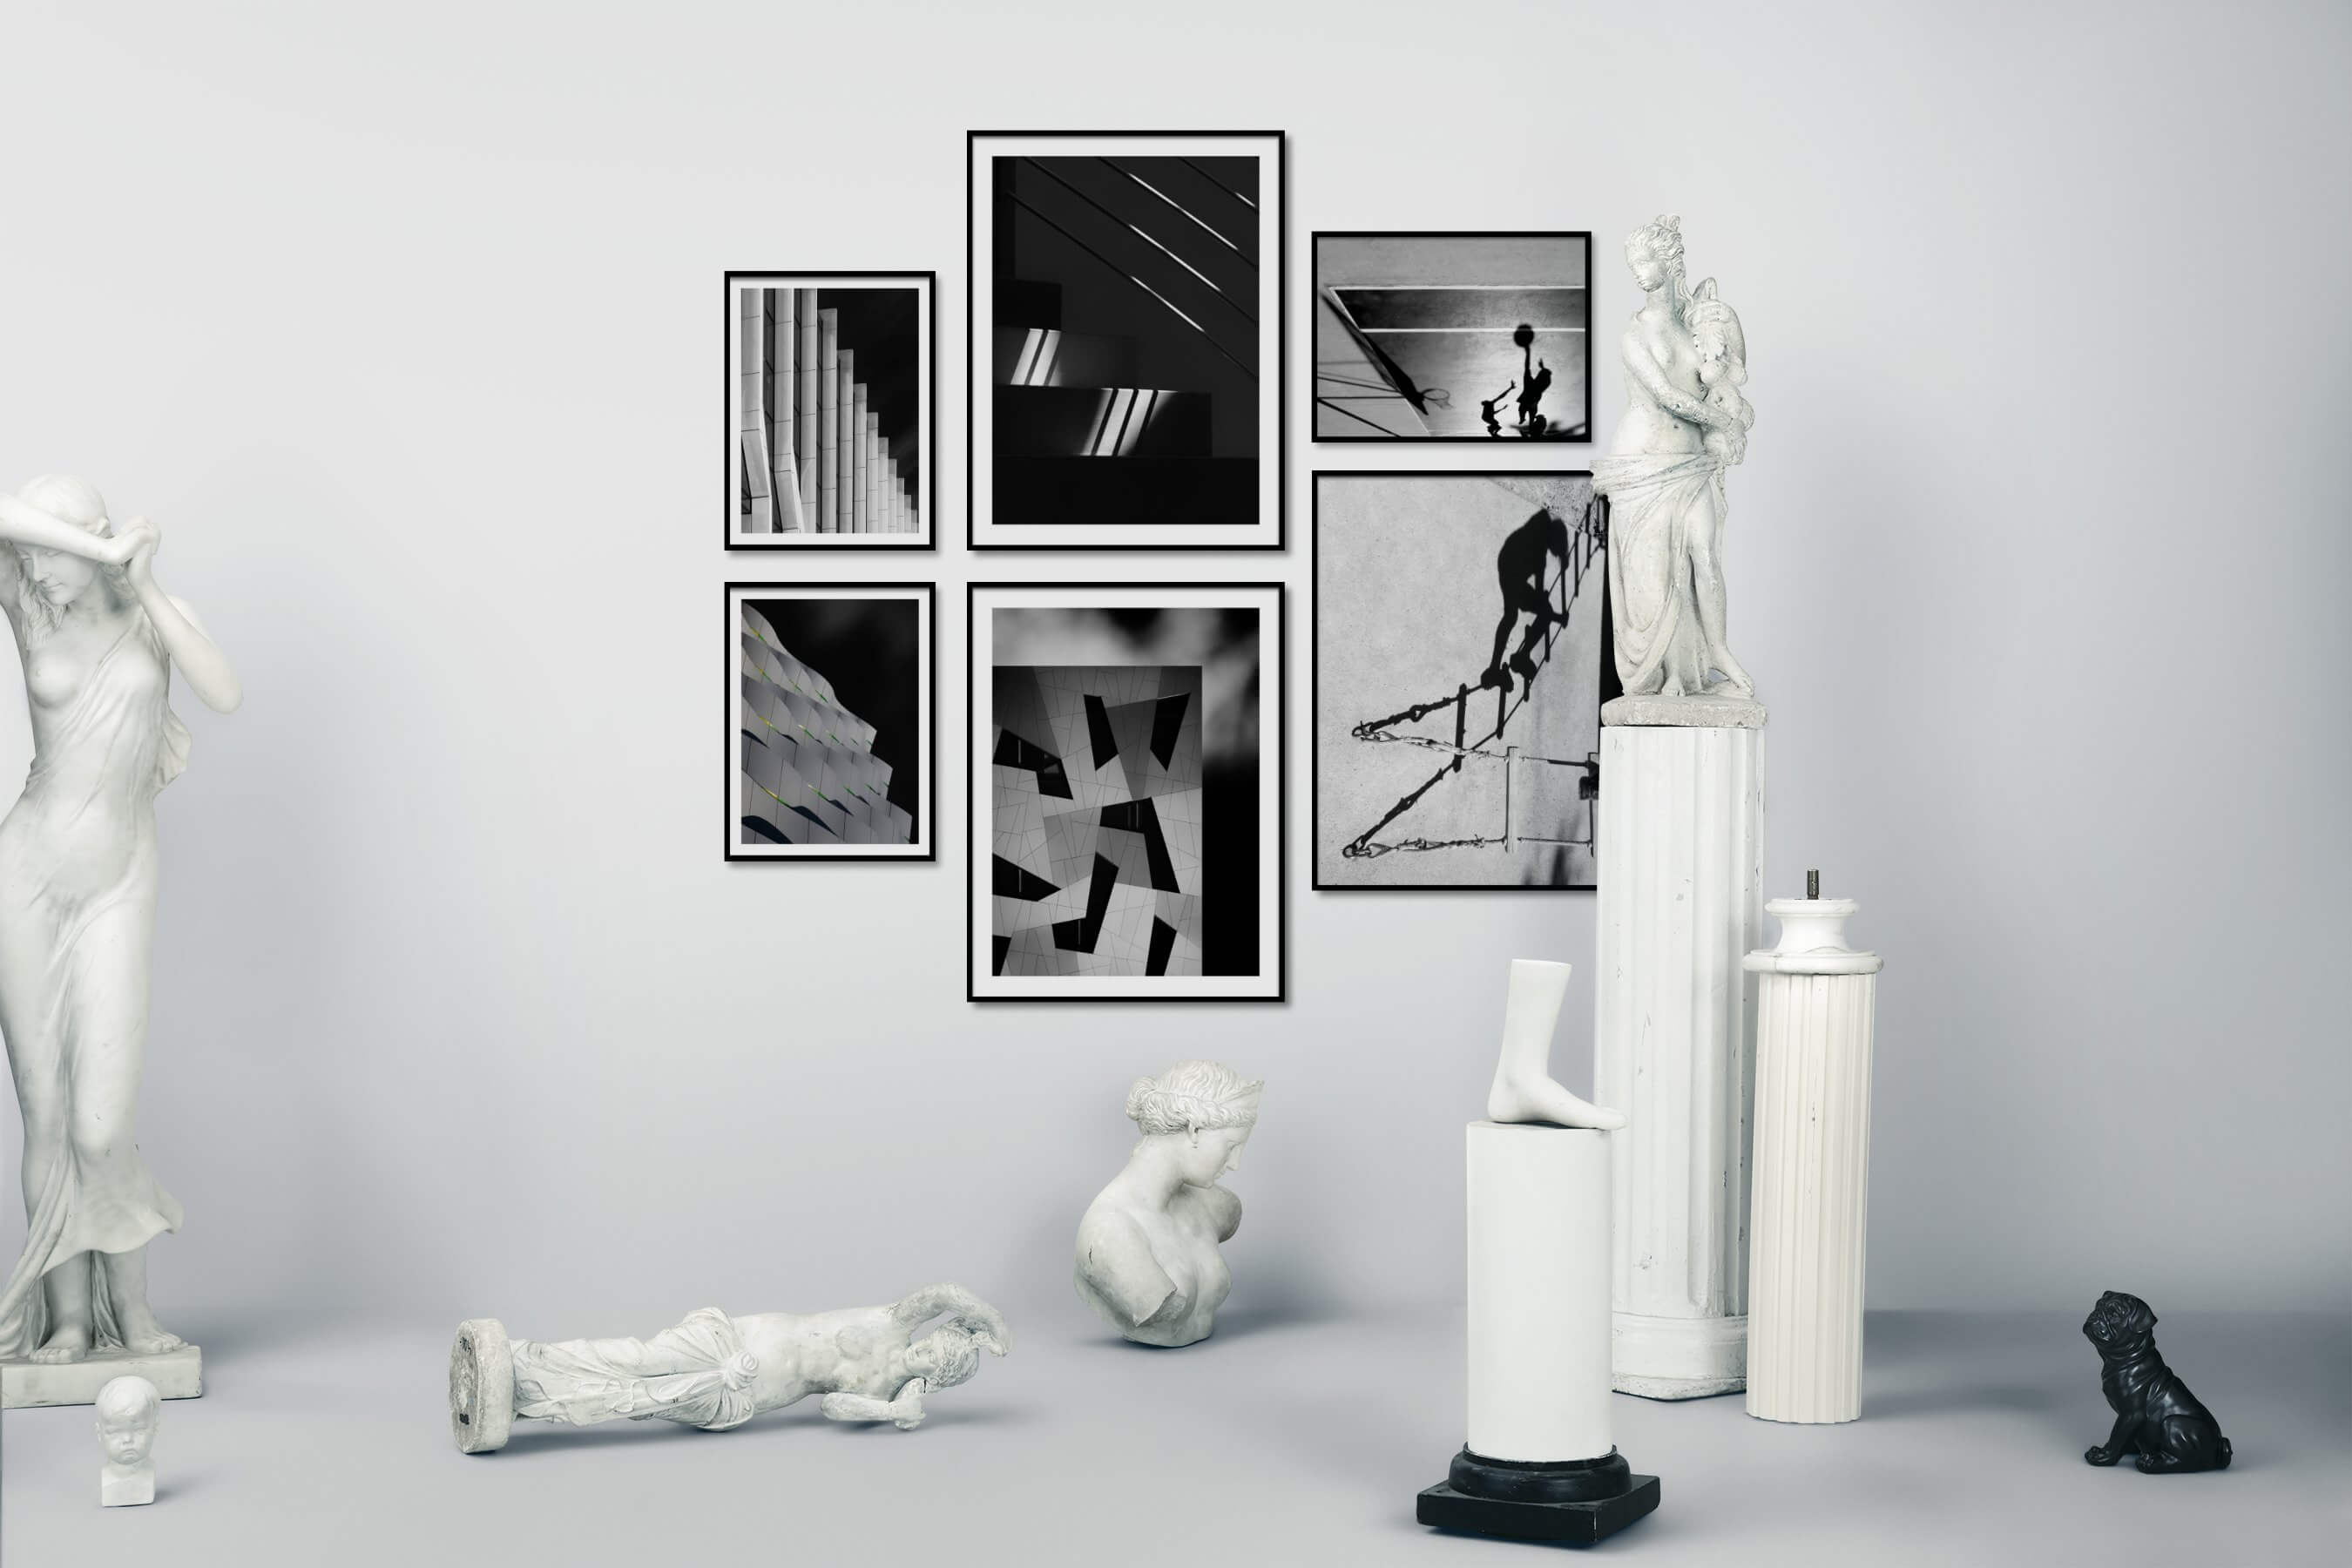 Gallery wall idea with six framed pictures arranged on a wall depicting Black & White and For the Moderate